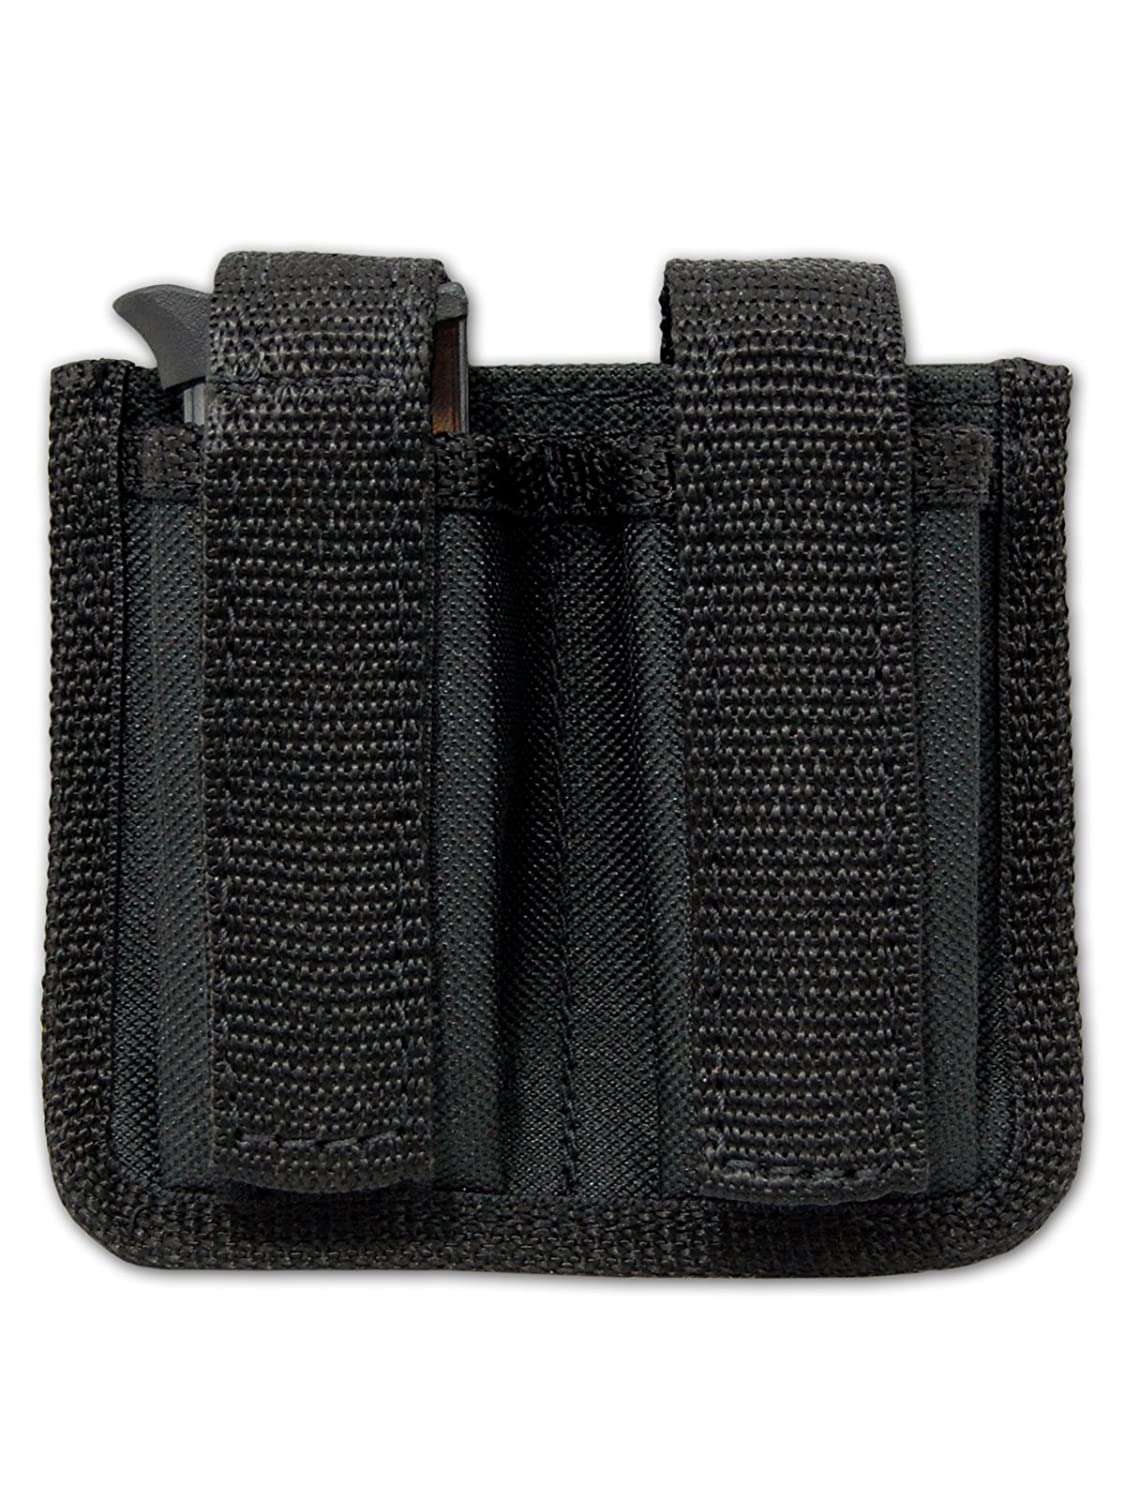 New Barsony Double Magazine Pouch for .380, Ultra-Compact 9mm 40 45